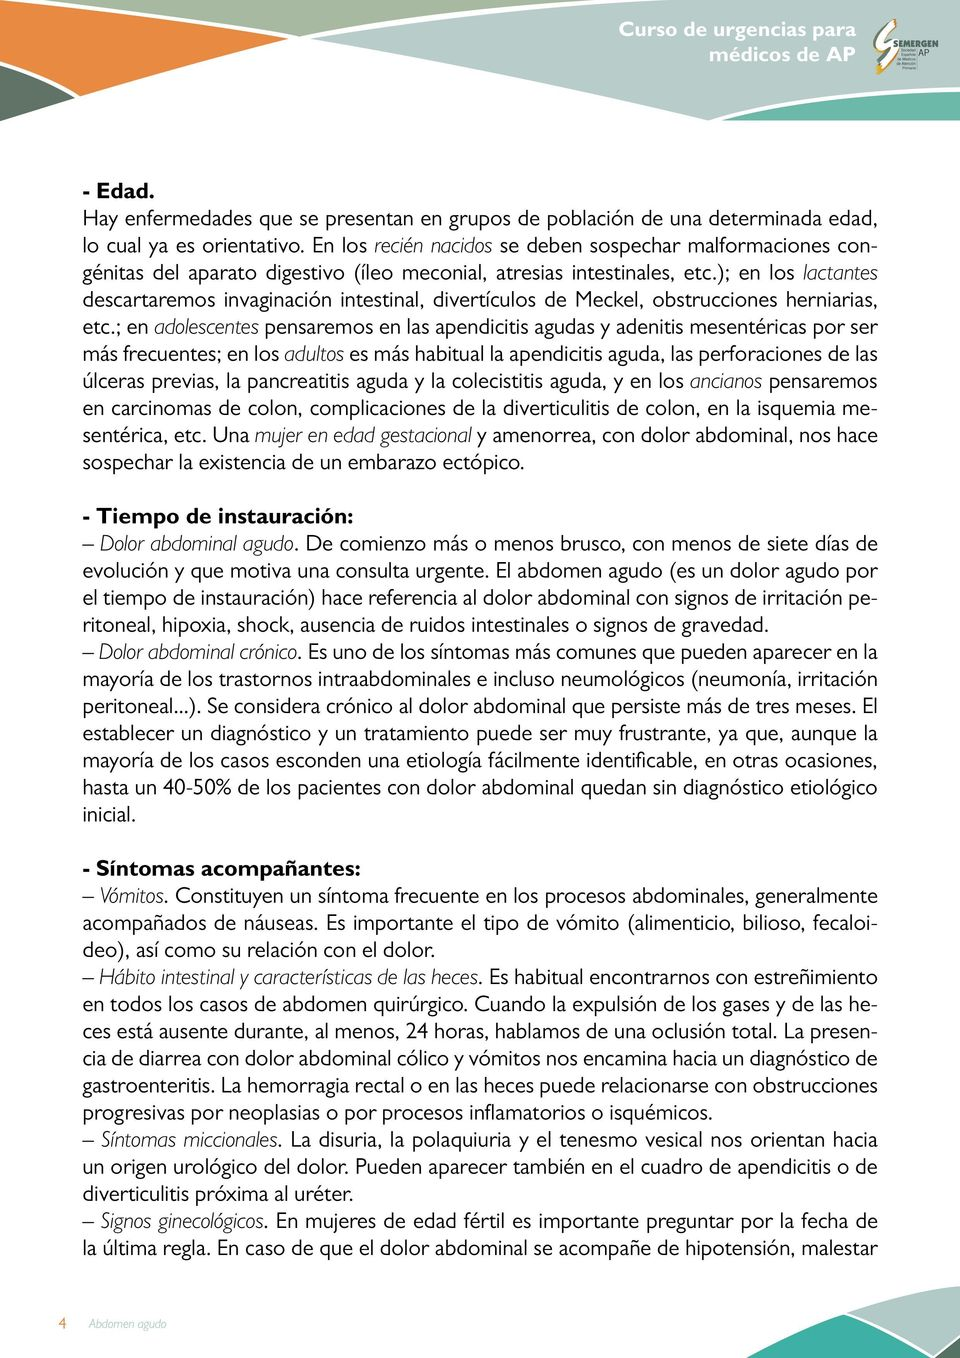 ); en los lactantes descartaremos invaginación intestinal, divertículos de Meckel, obstrucciones herniarias, etc.